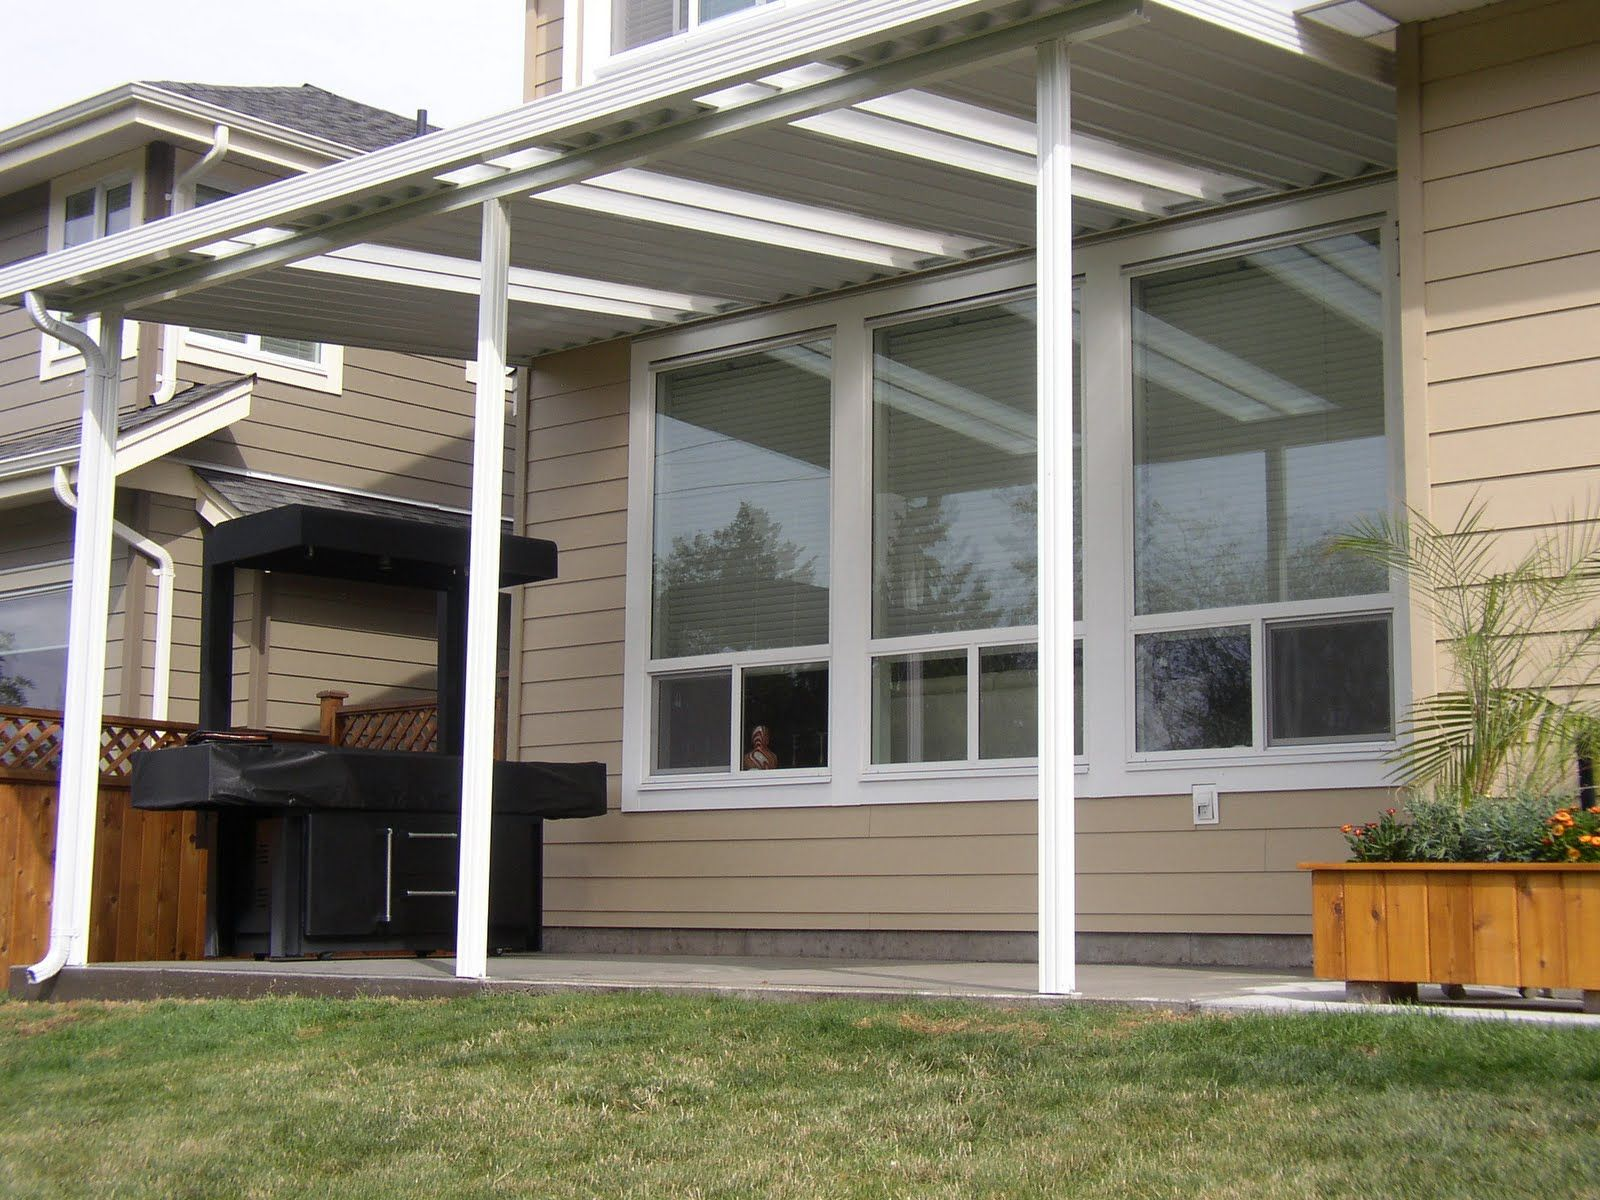 porch deck awning awnings kimberly diy luxury ideas decks for and garden